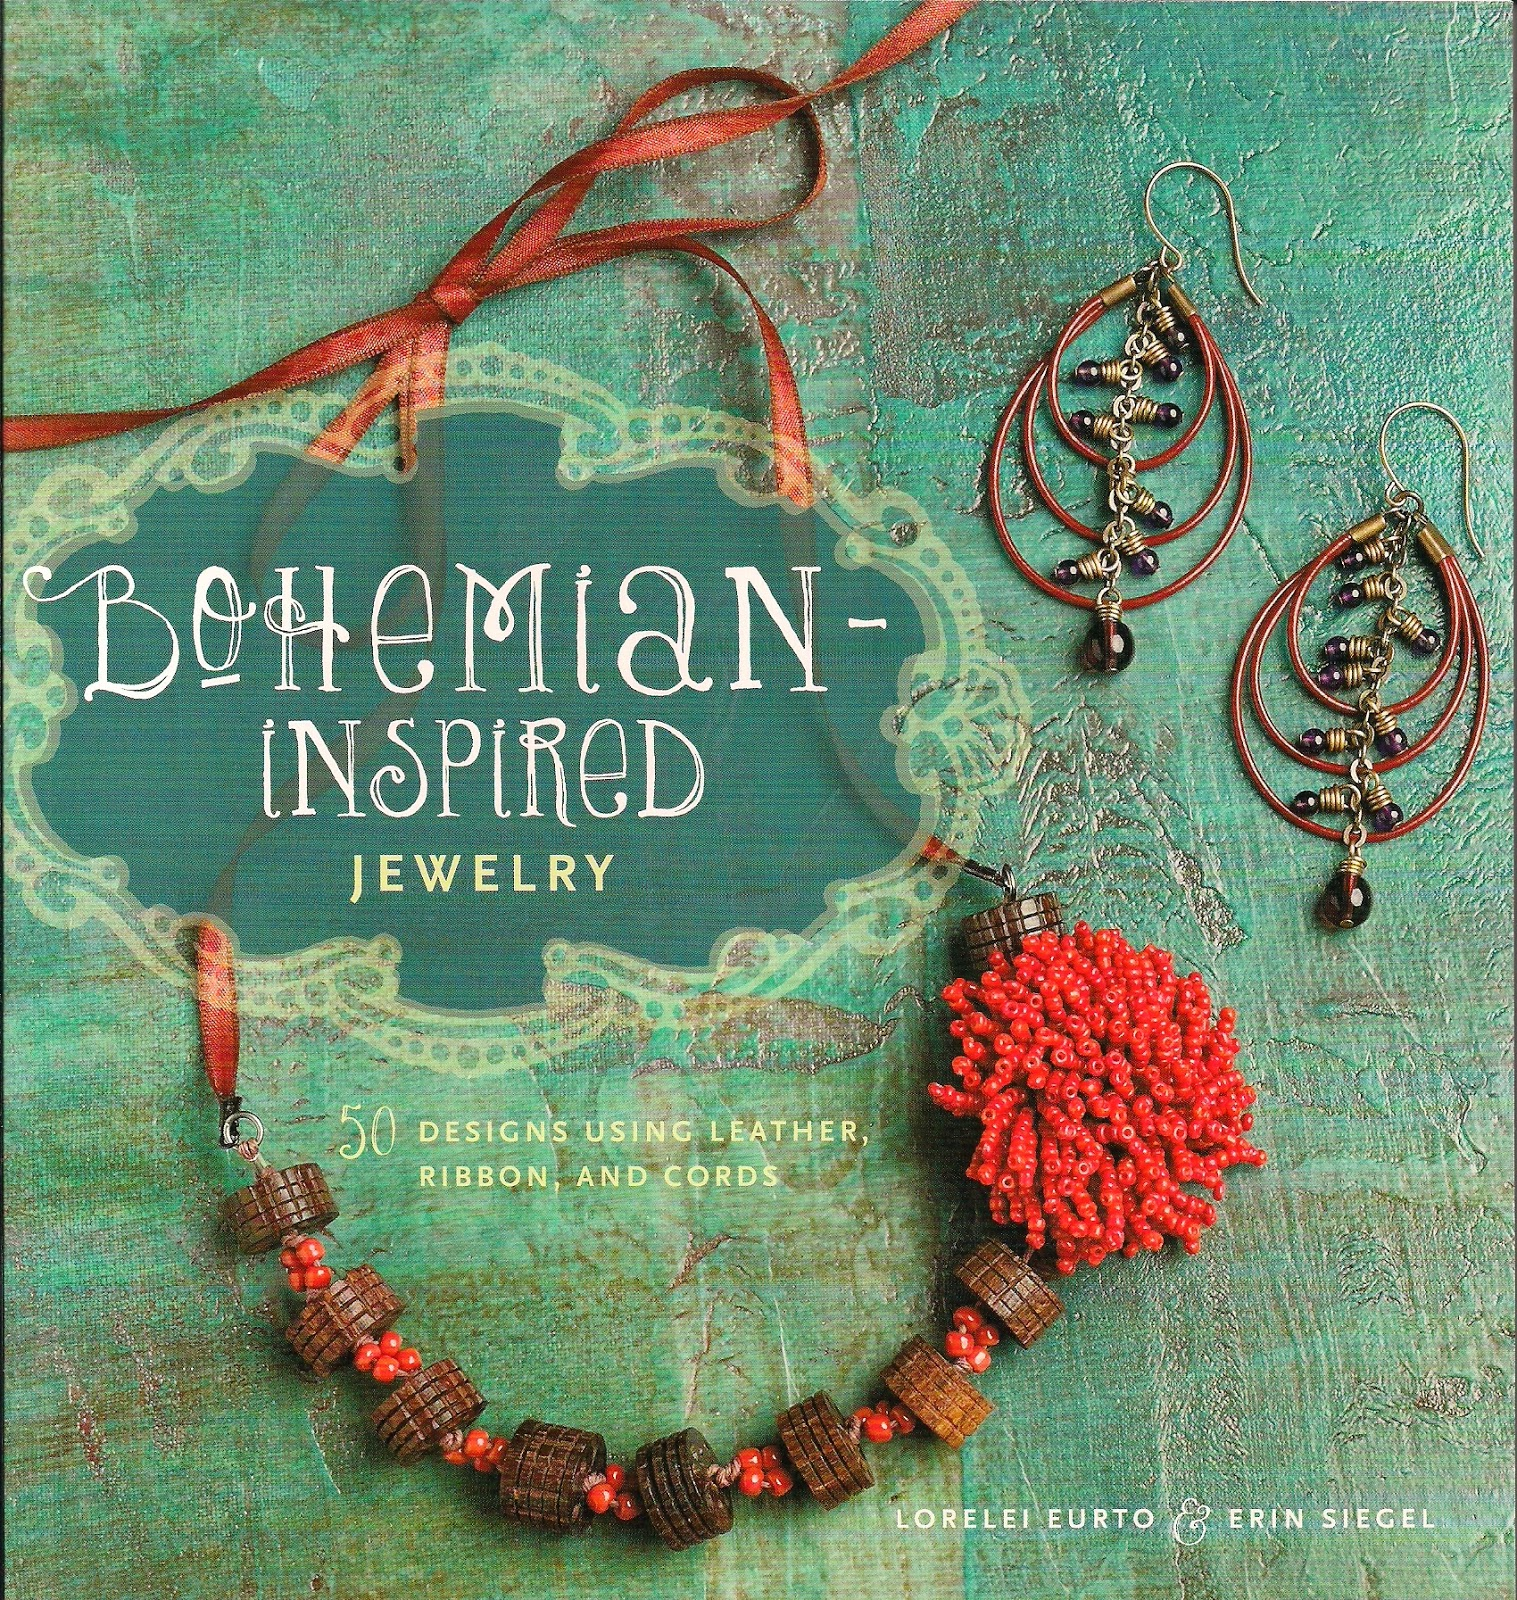 http://www.amazon.com/Bohemian-Inspired-Jewelry-Designs-Leather-Ribbon/dp/1596684984